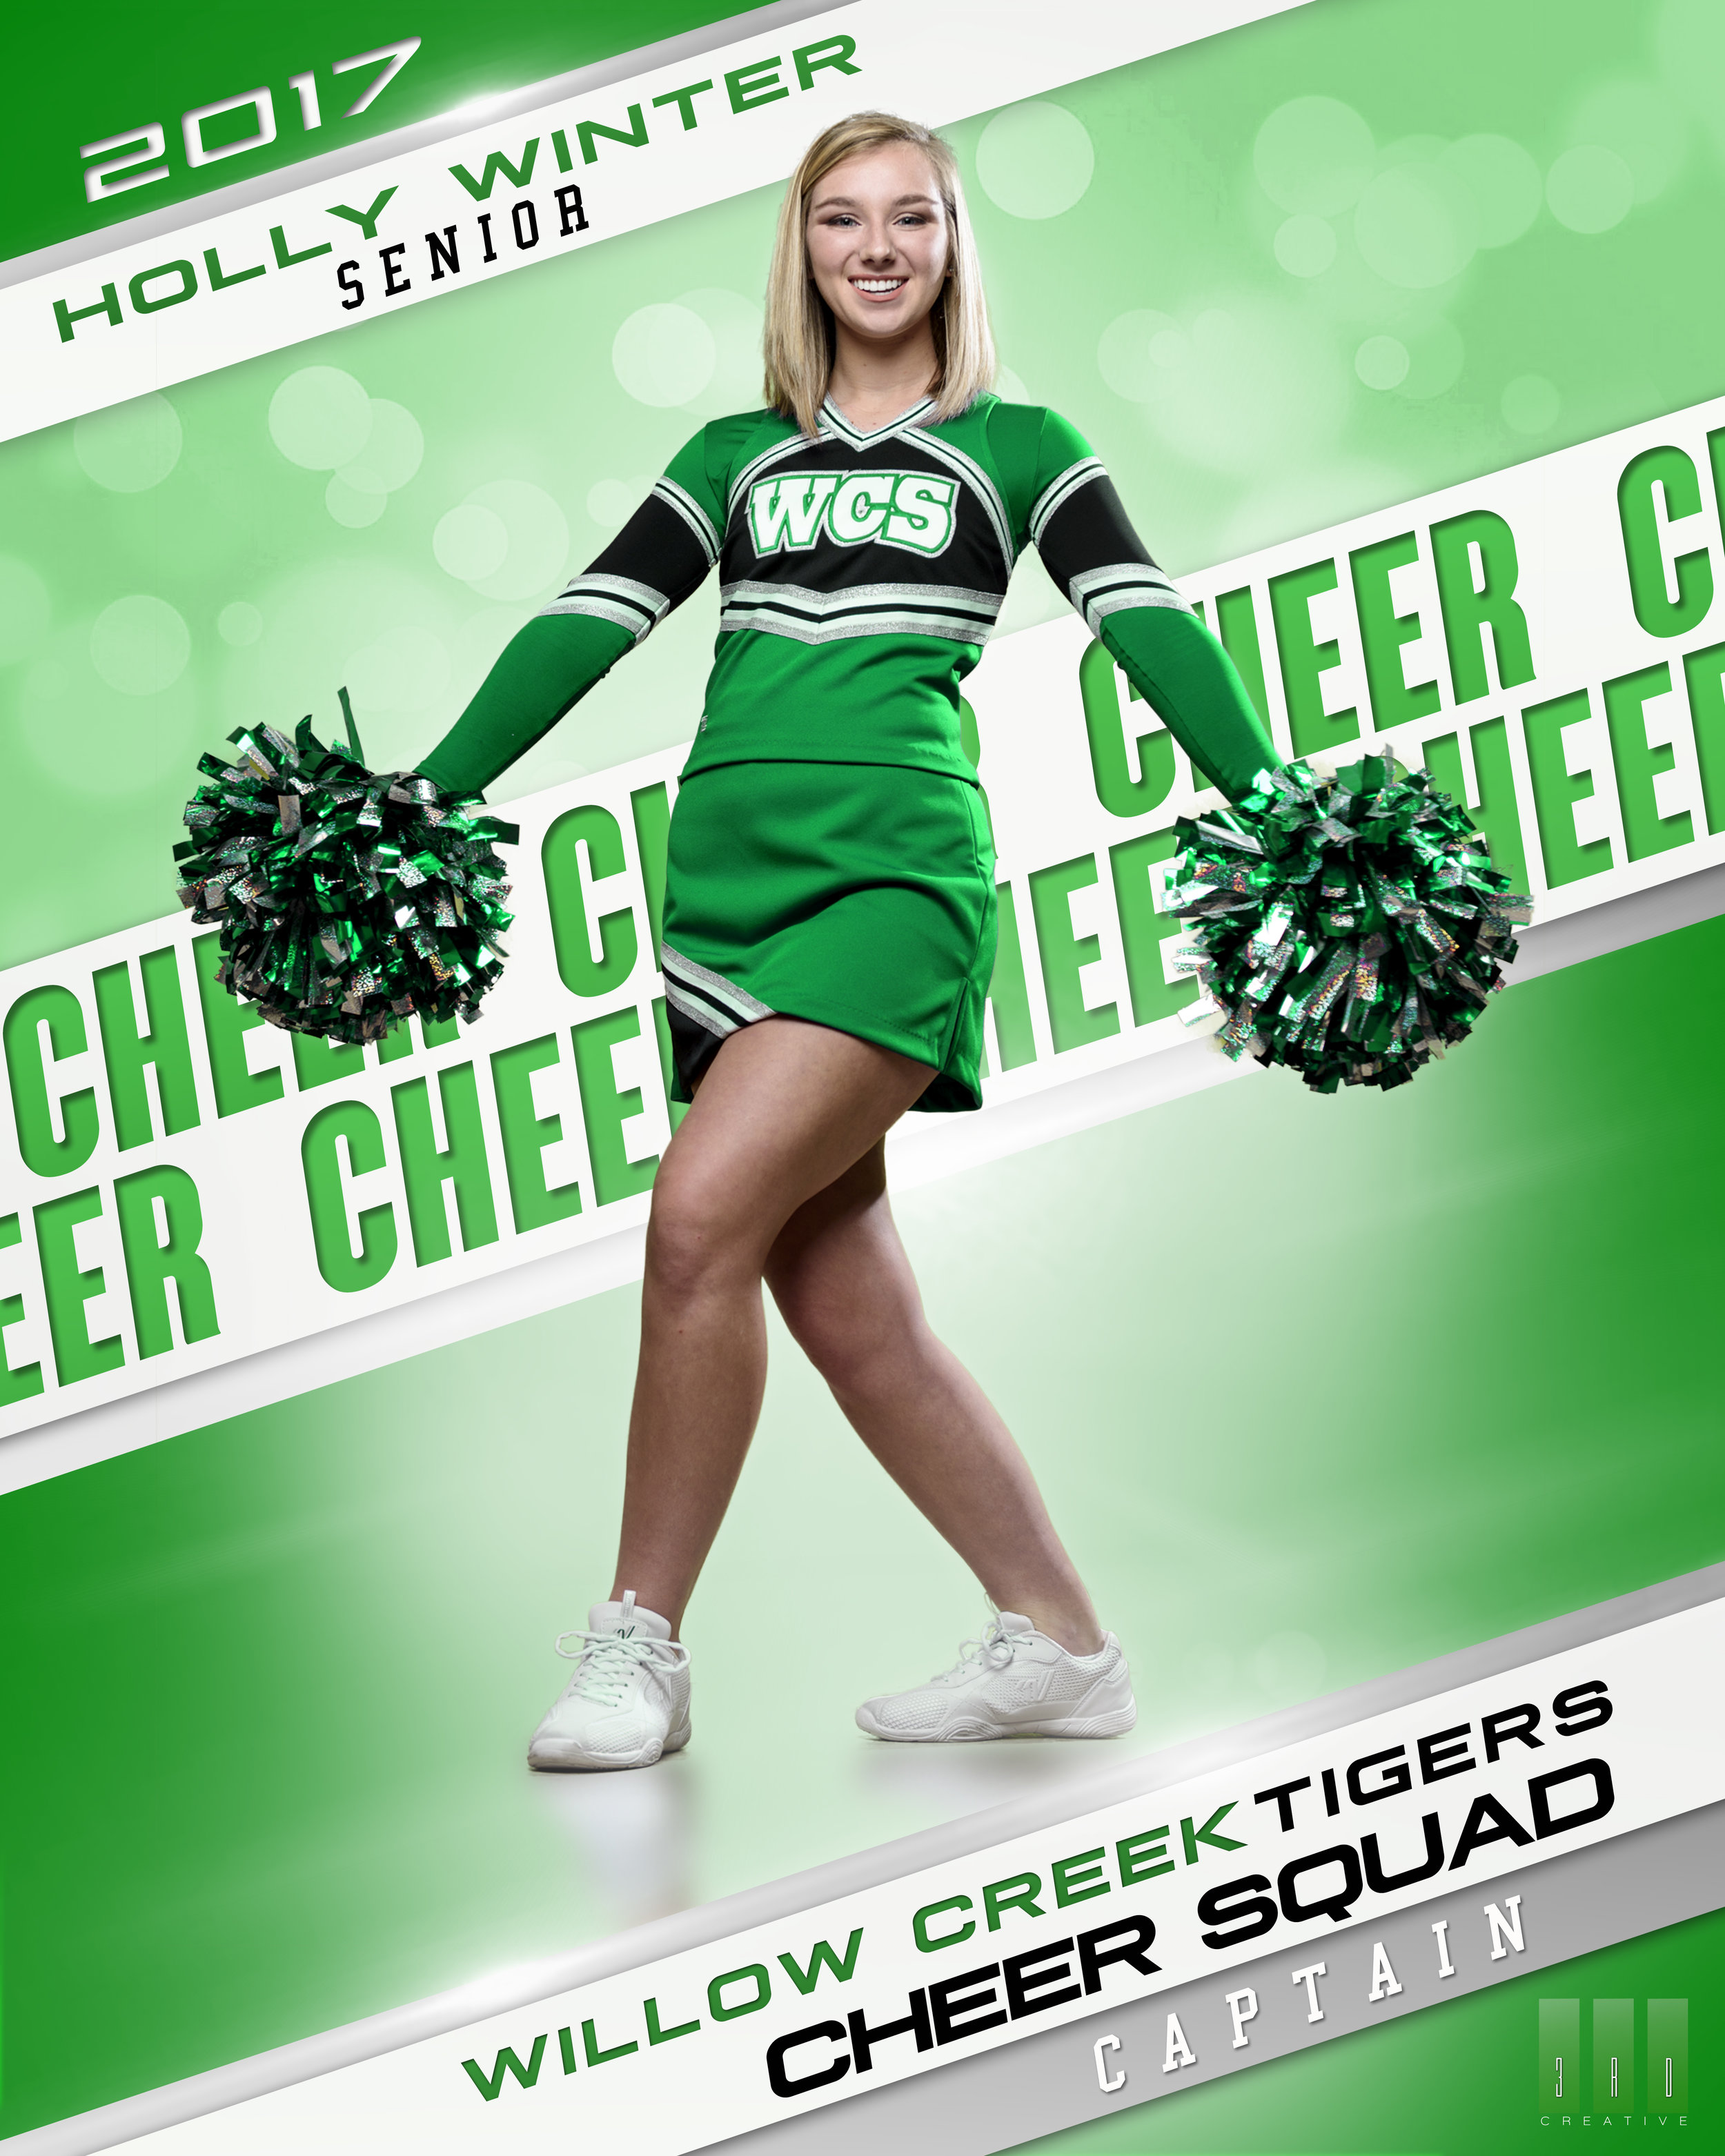 Cheer_Utility_Player_16x20_Ind.jpg